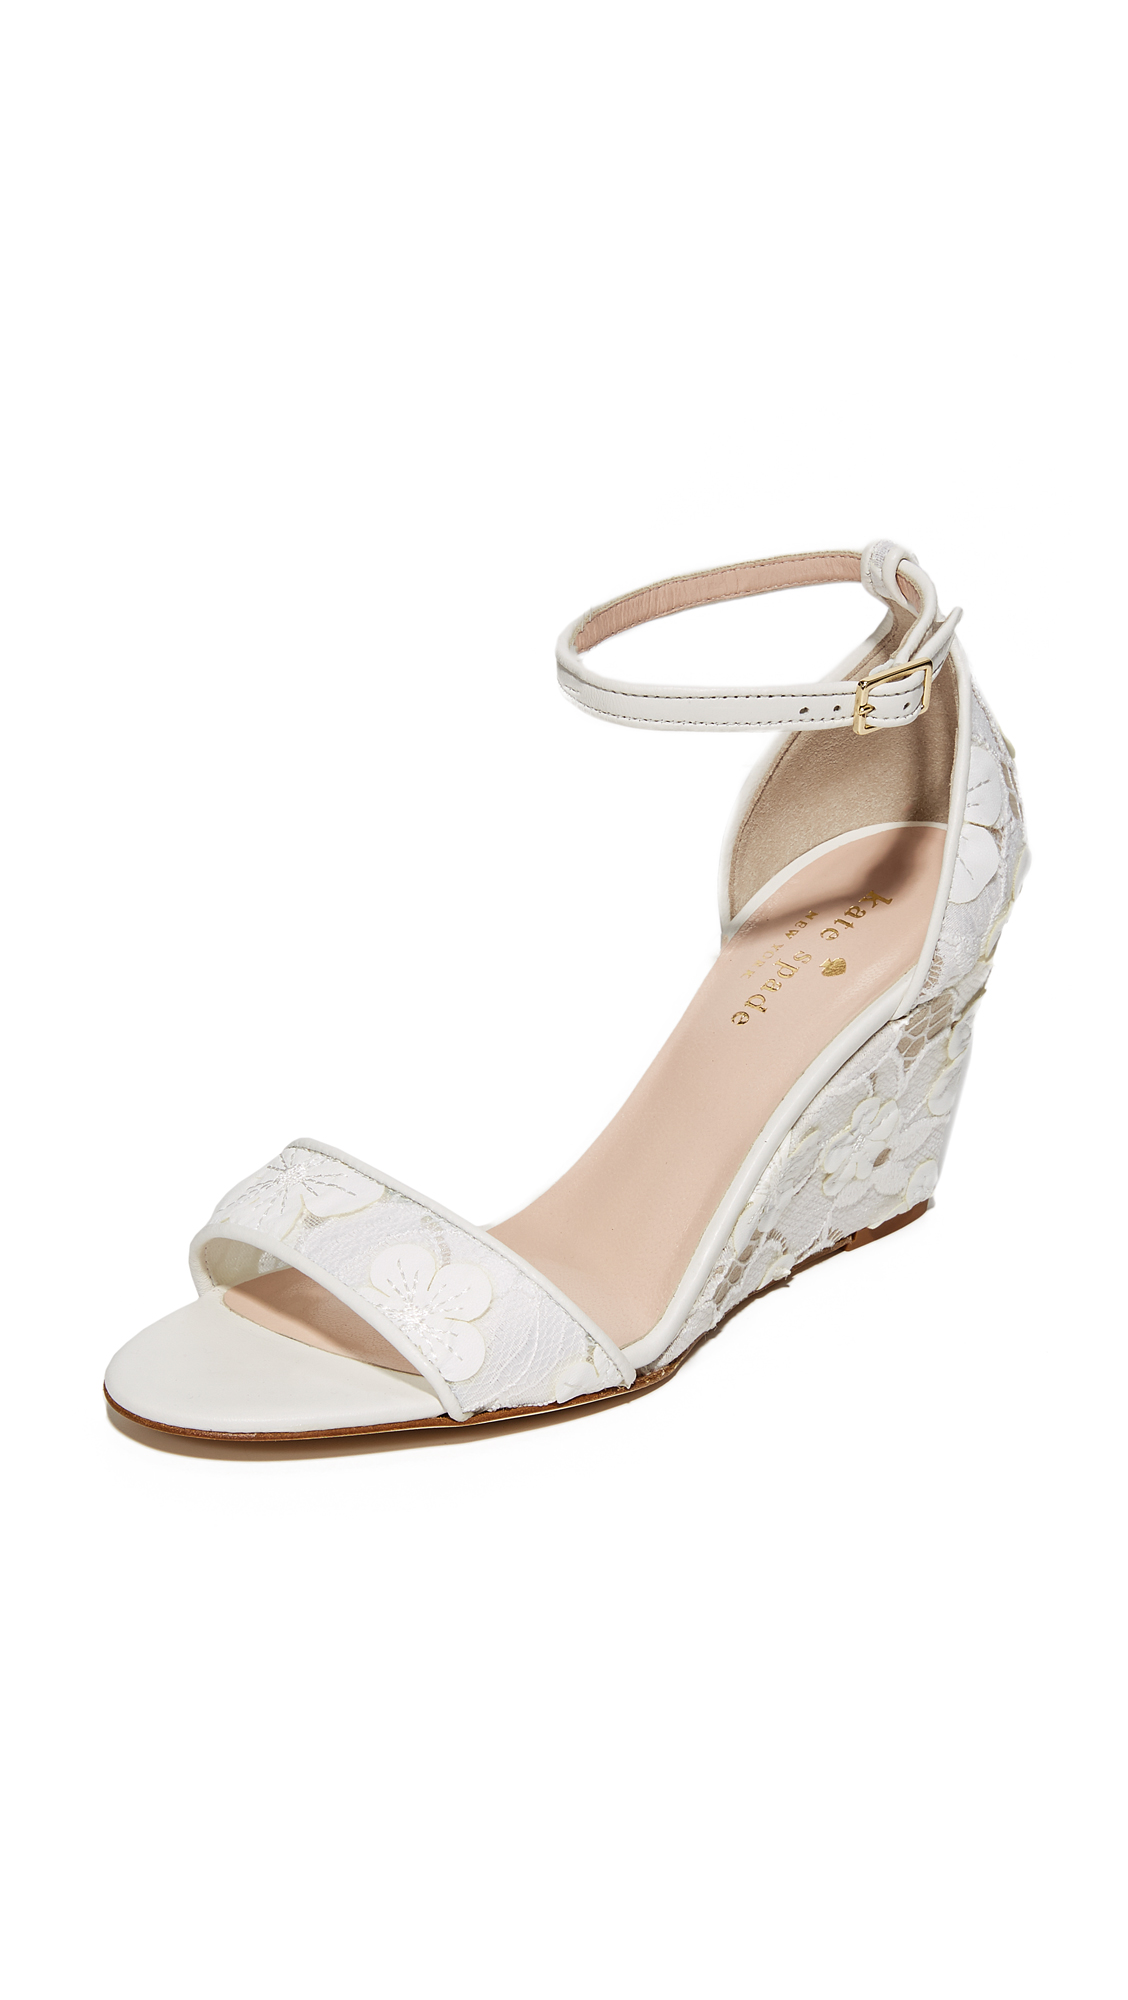 Photo of Kate Spade New York Roosevelt Lace Wedges Off White - Kate Spade New York online